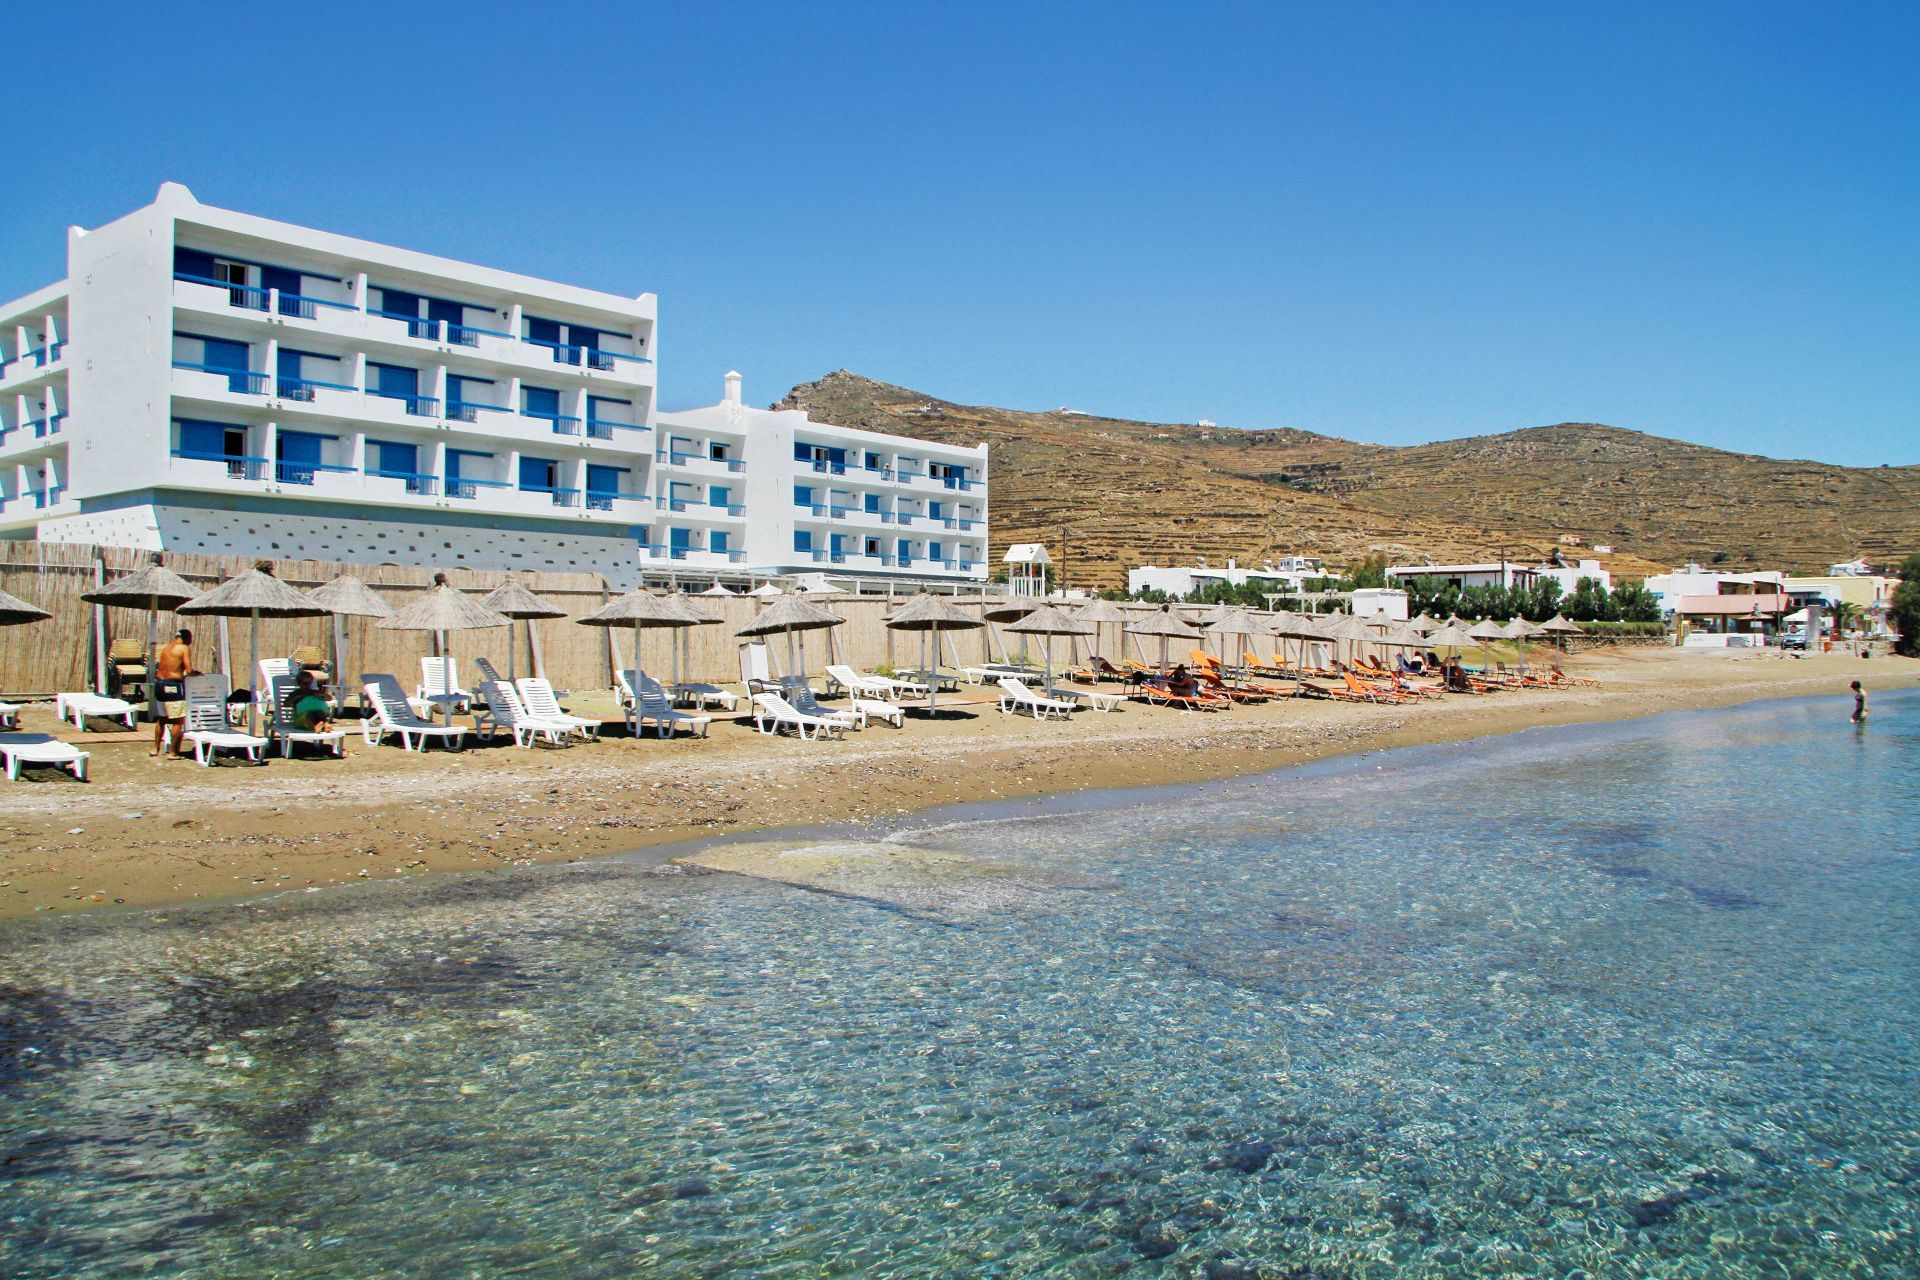 Accommodation and hotels in Tinos